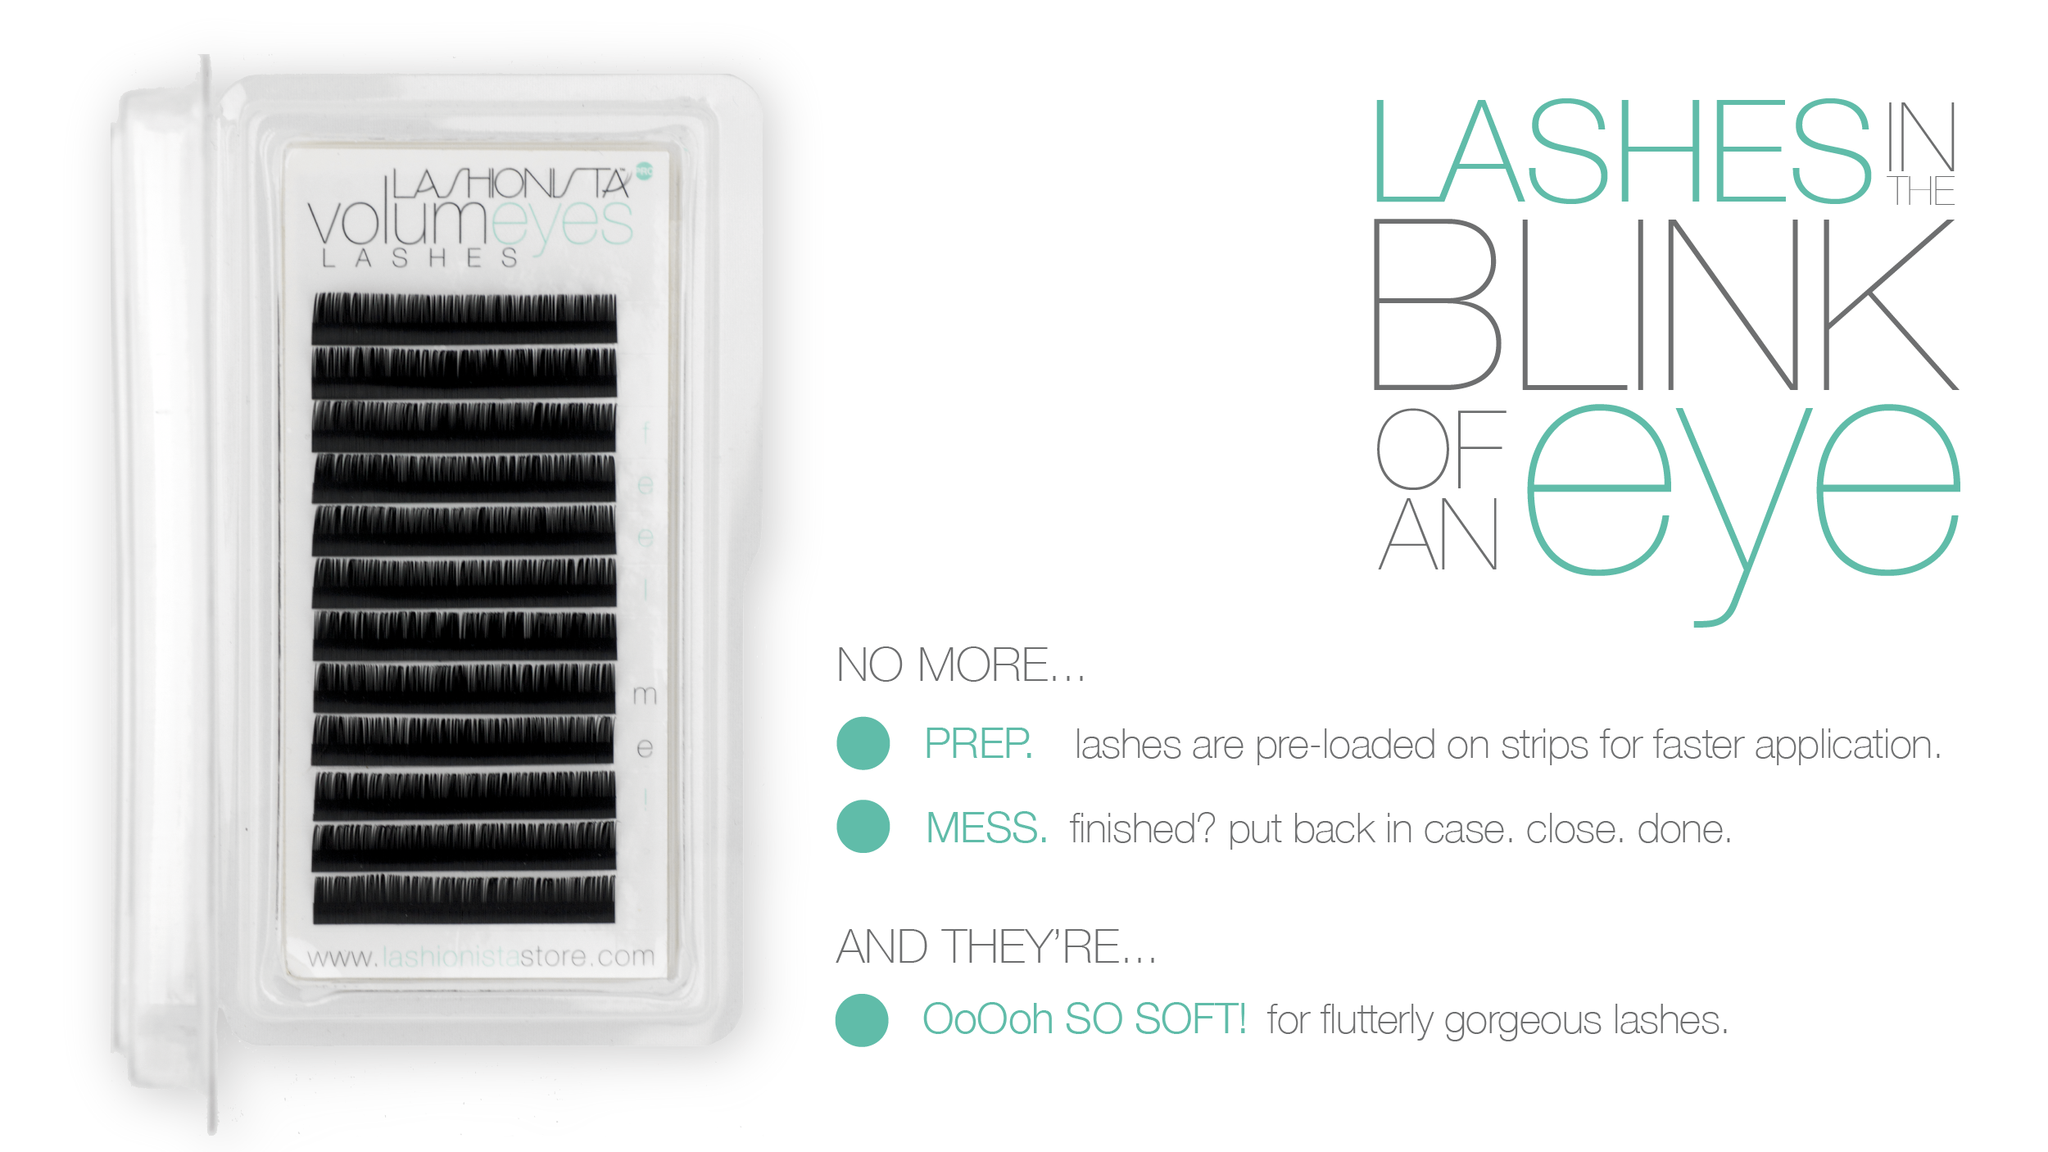 Lashes in the blink of an eye. No more... prep, lashes are pre-loaded on strips for faster application. Mess, finished?  put back in case. Close. Done! And they're... OoOoh so soft! for flutterly gorgeous lashes.